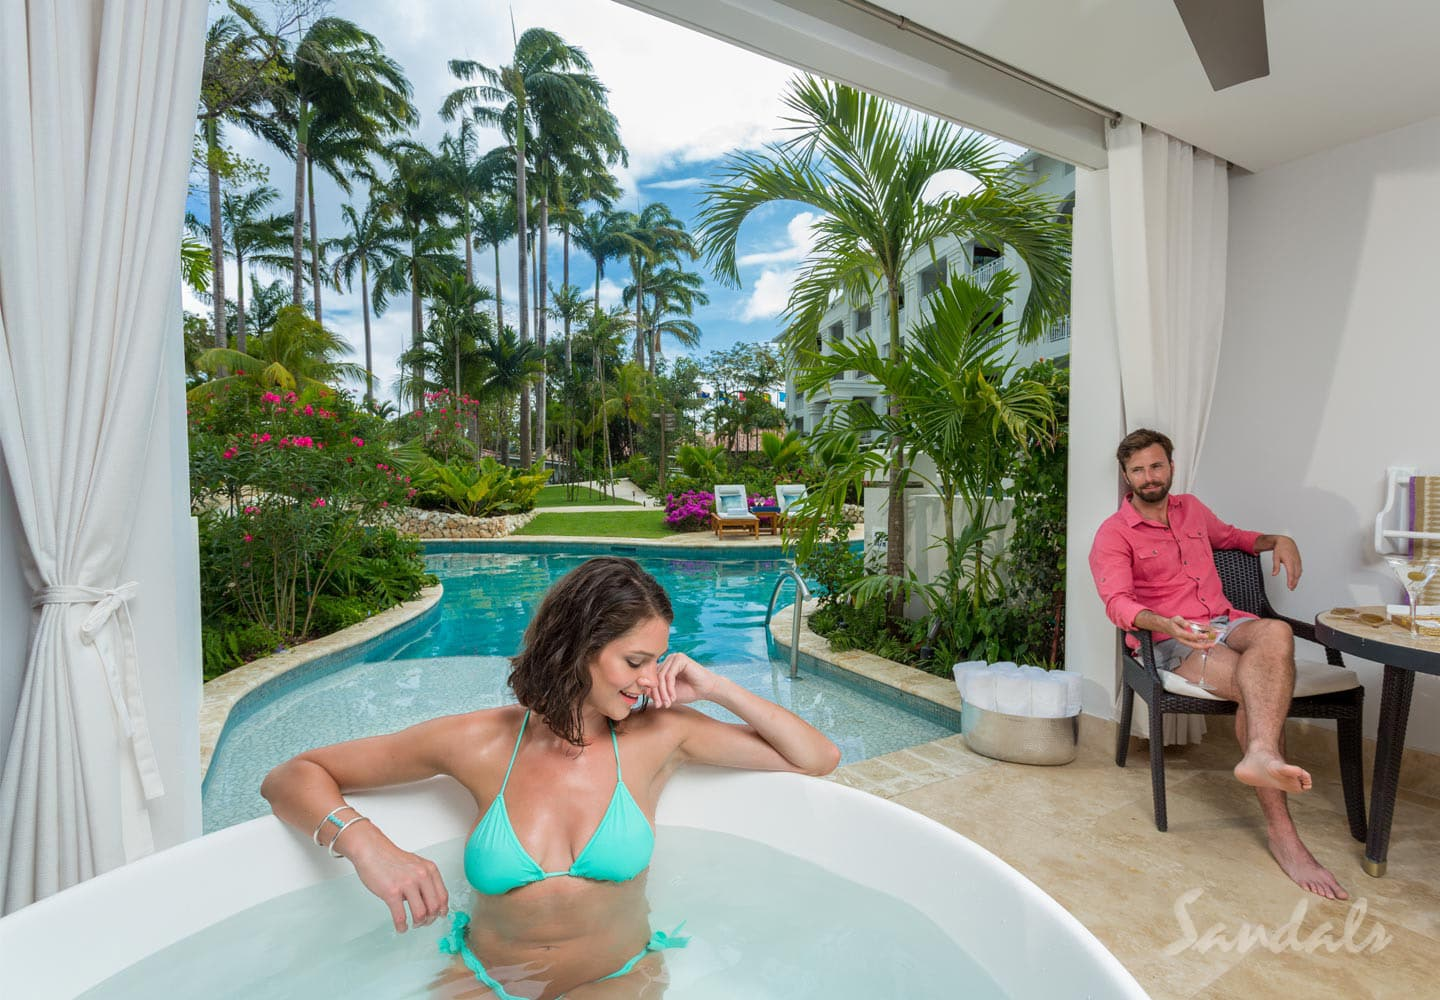 couple relaxing in their private room at Sandals Barbados resort all inclusive adult only, can be booked through Southern Travel Agency Augusta, GA